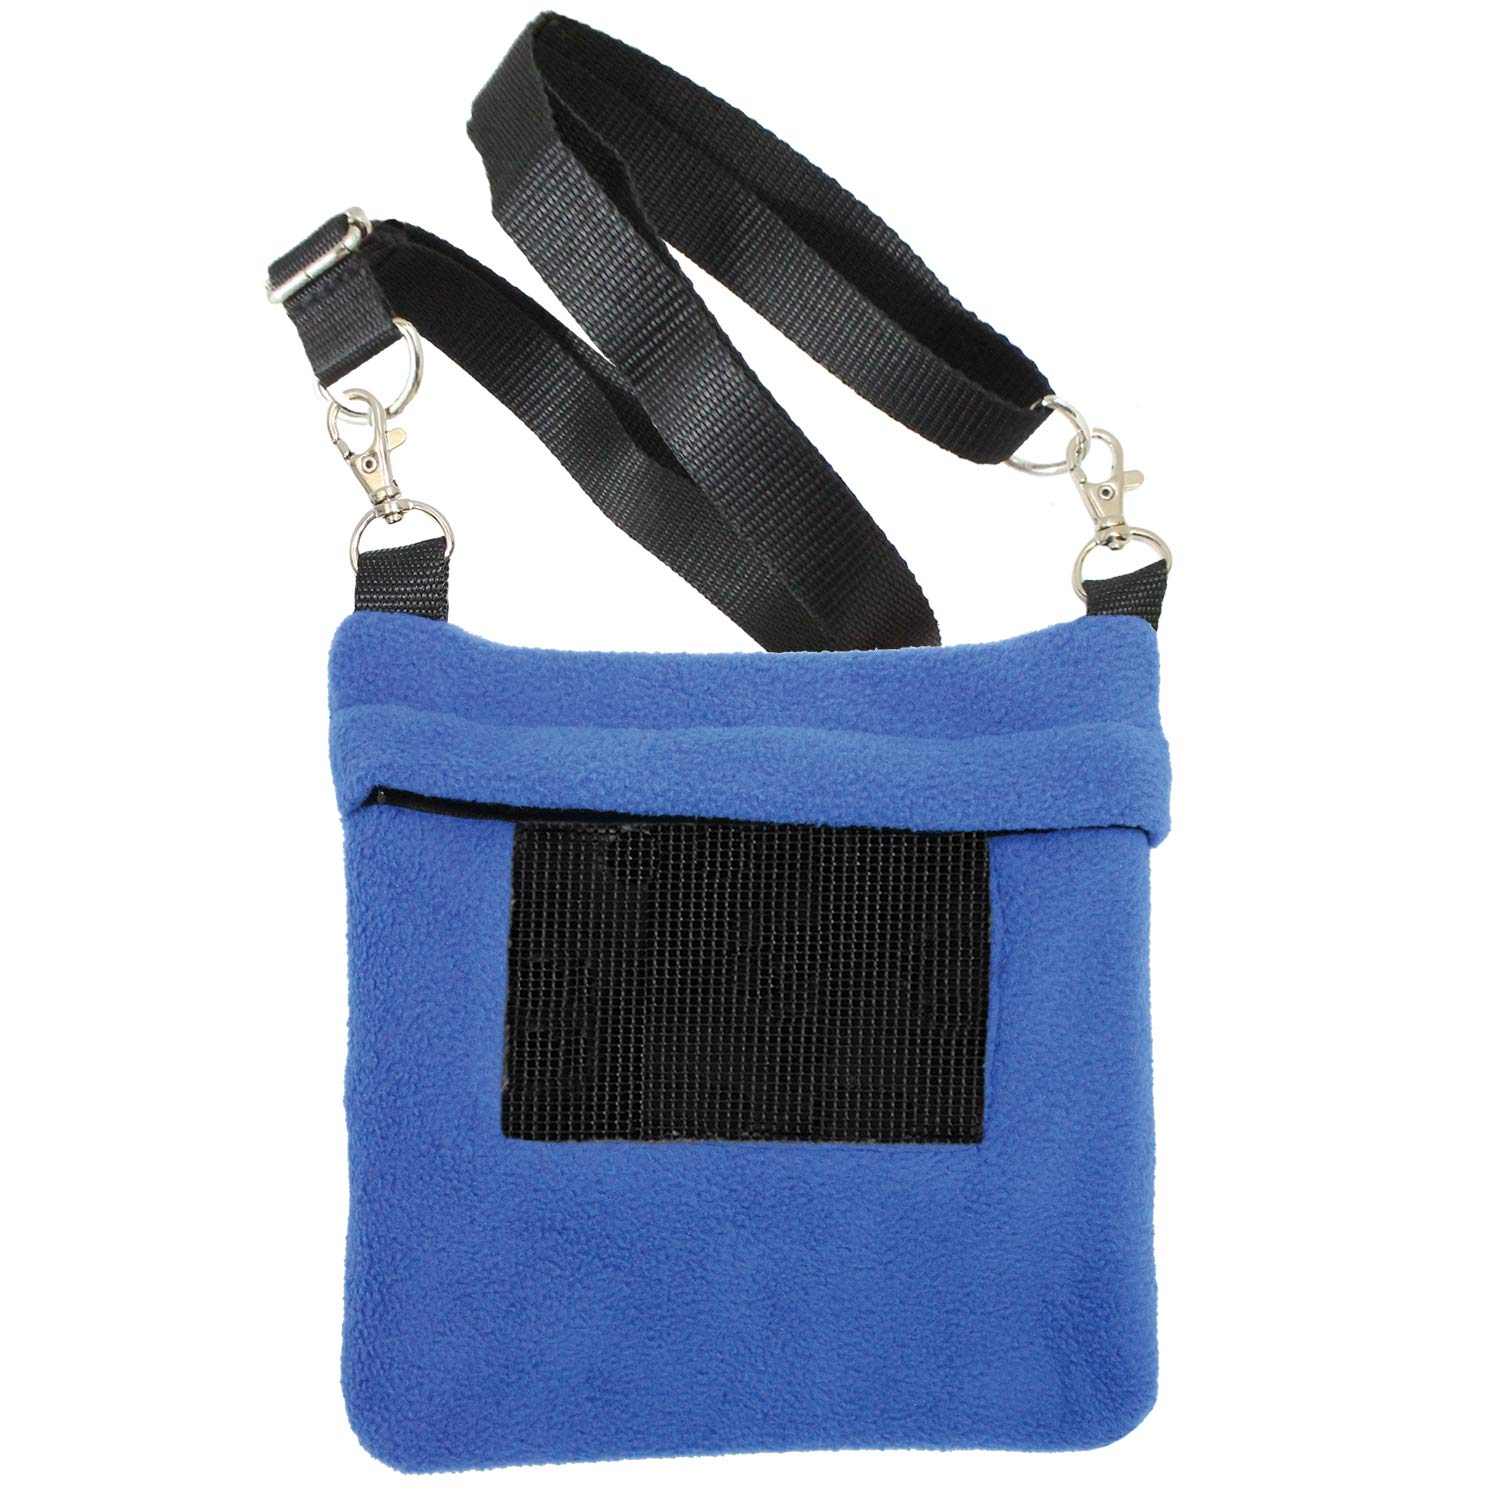 Exotic Nutrition Carry Bonding Pouch (Blue) - Fleece Bonding Carrier - Sugar Gliders, Squirrels, Marmosets, and Other Nesting Animals